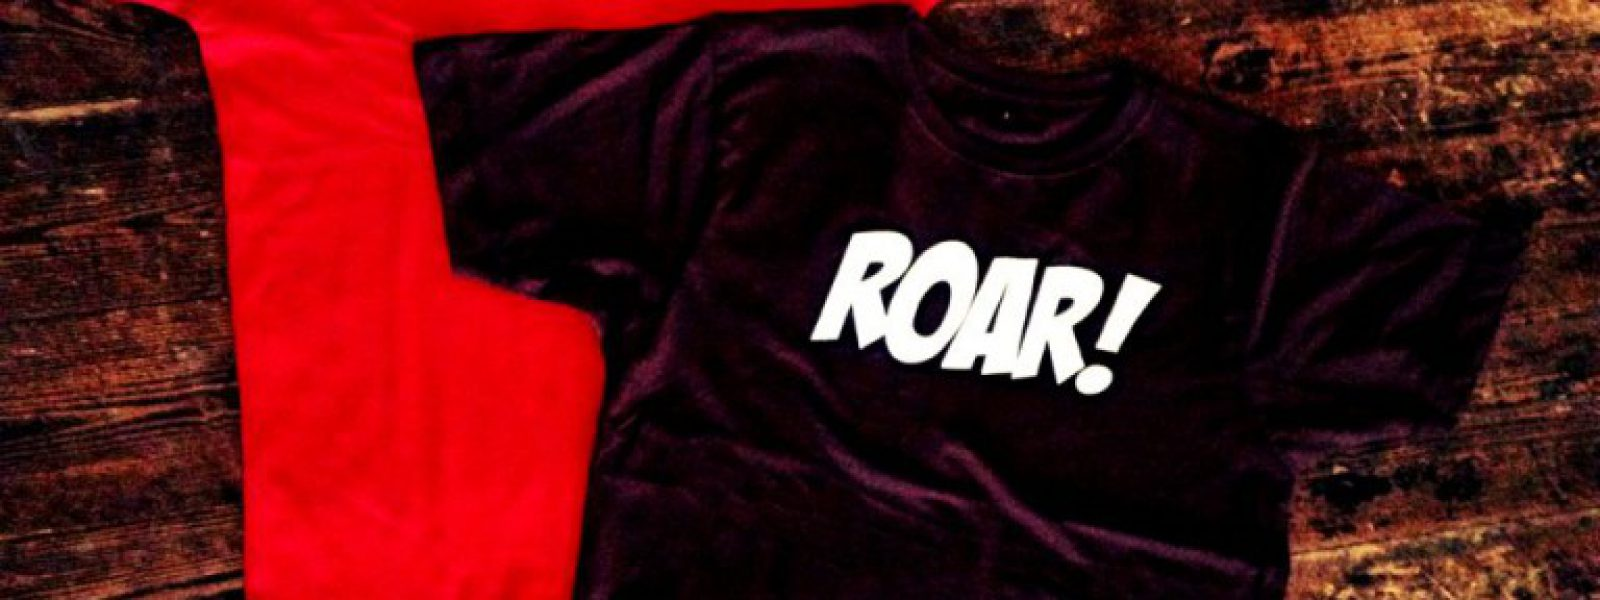 Das Shirt zum ROAR! (Making of)